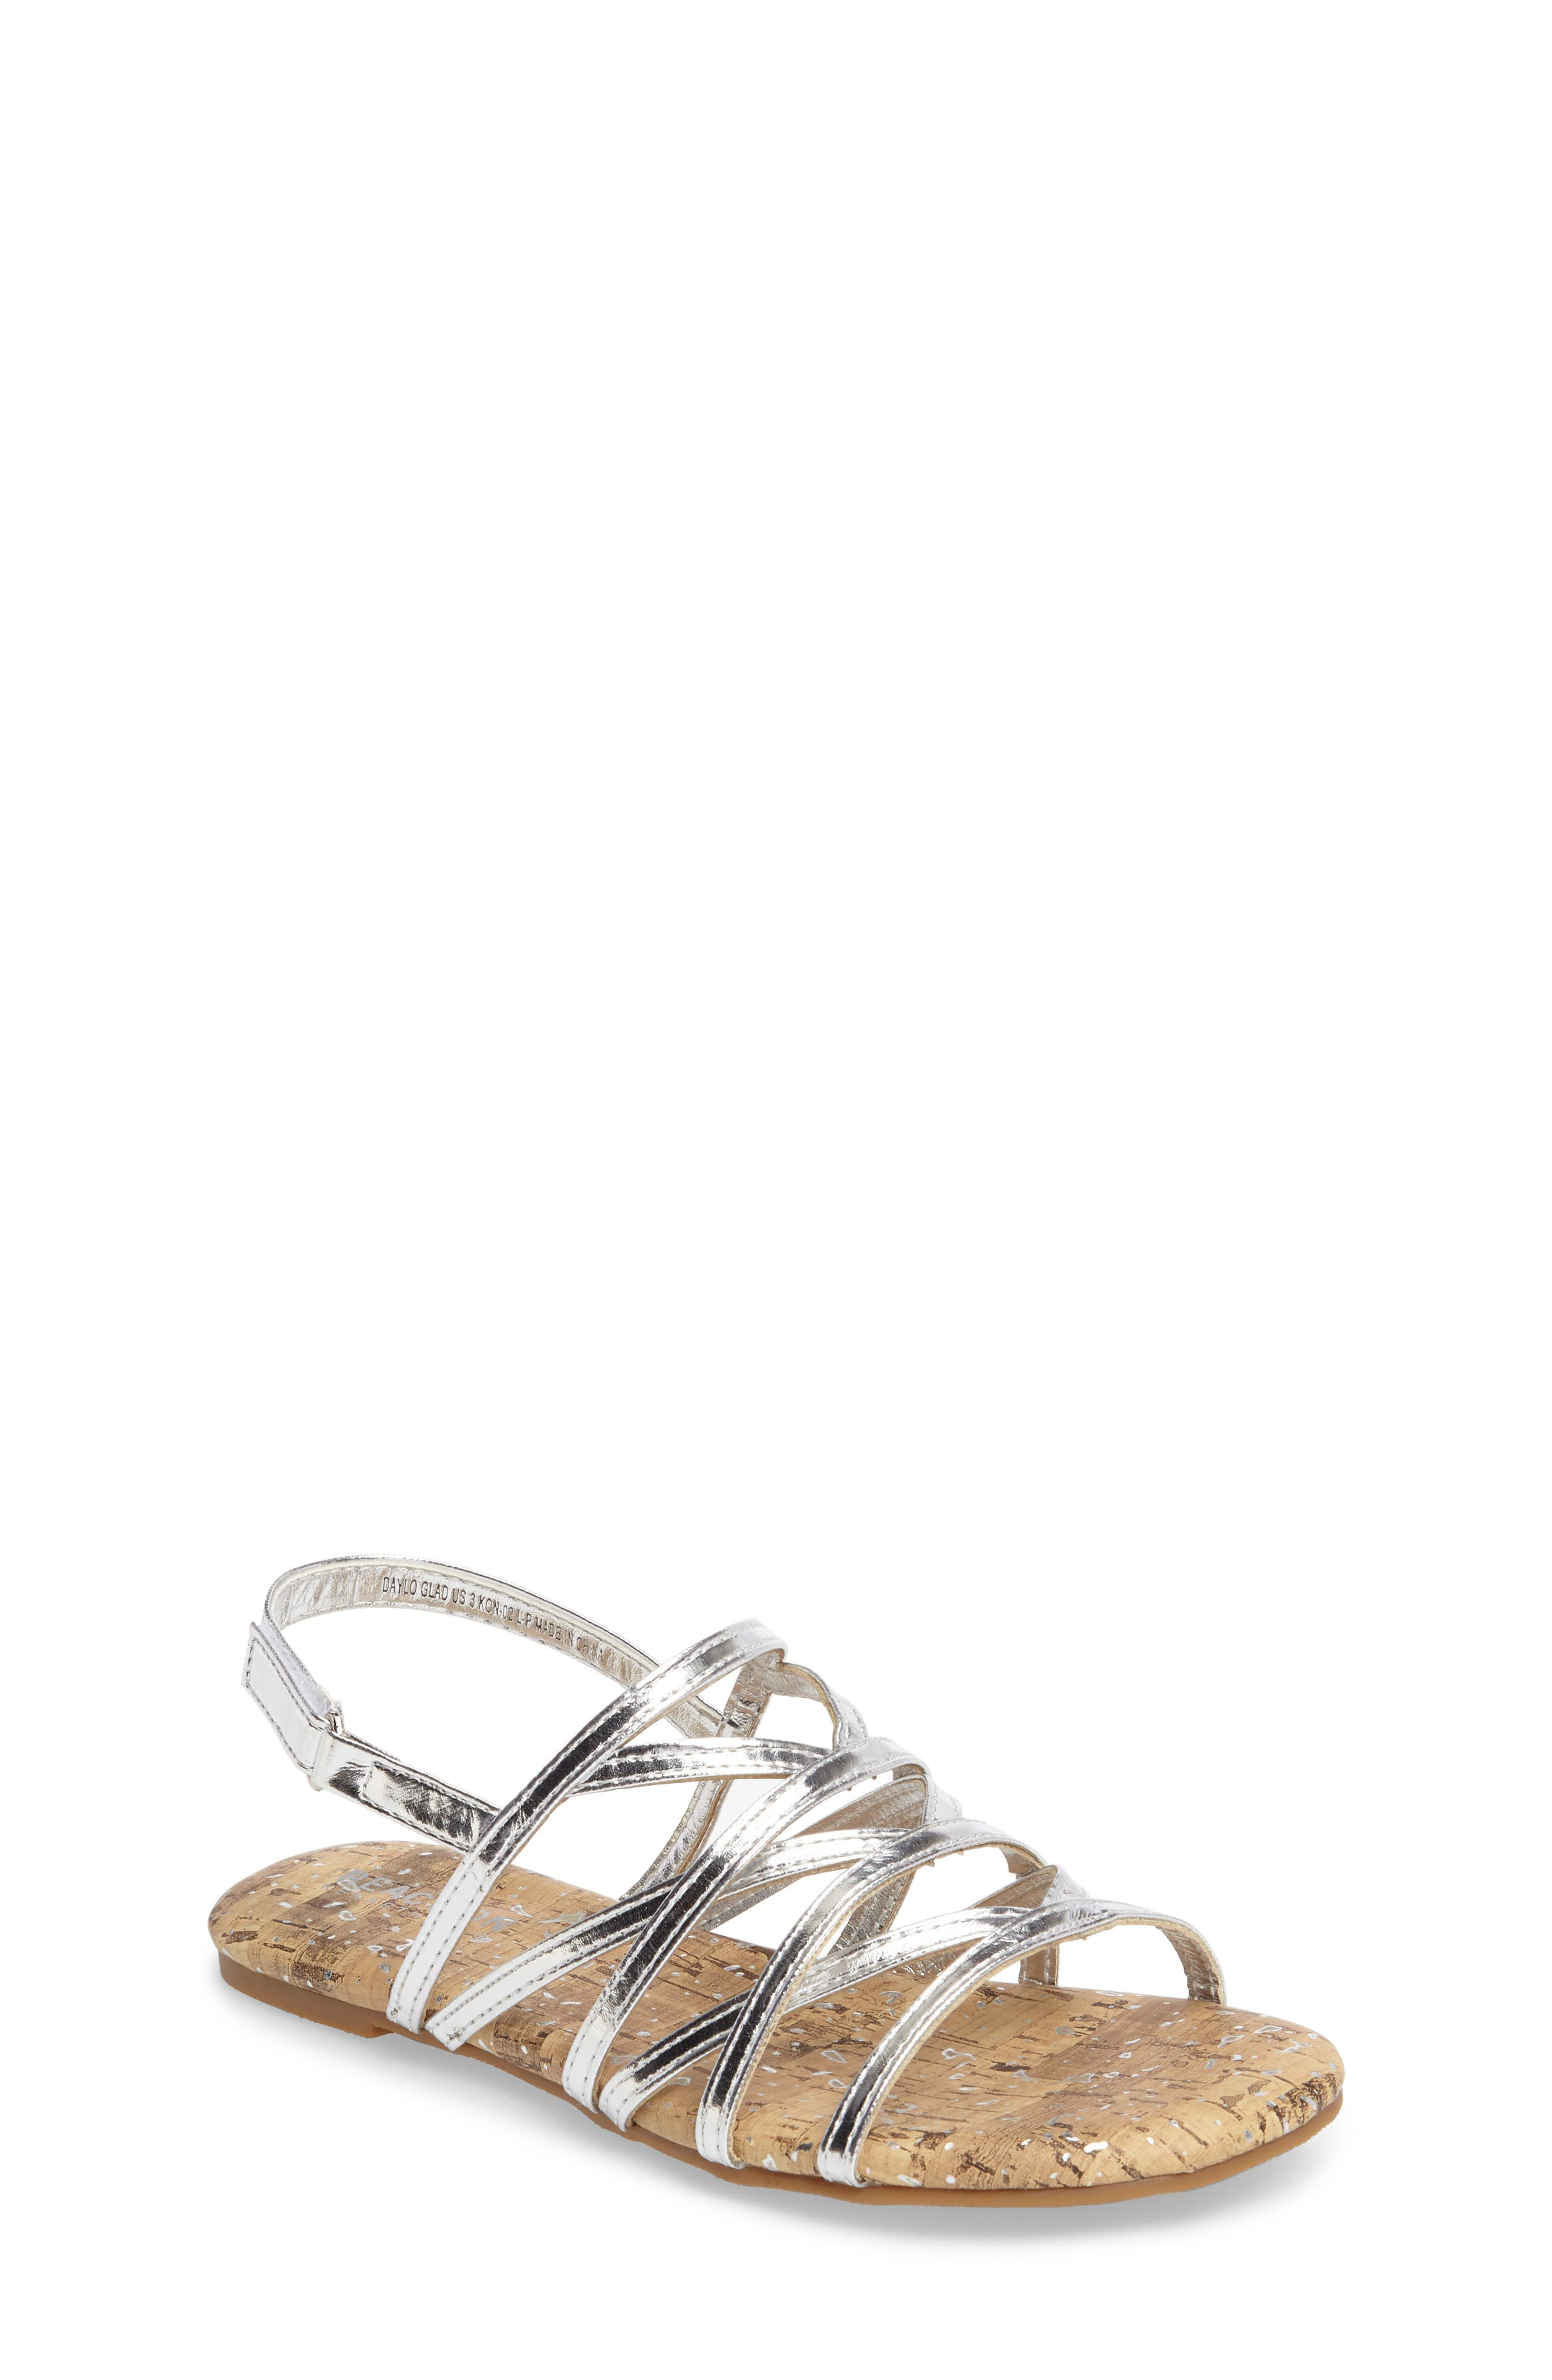 Daylo Glad Strappy Sandal,                             Main thumbnail 1, color,                             Silver Faux Leather